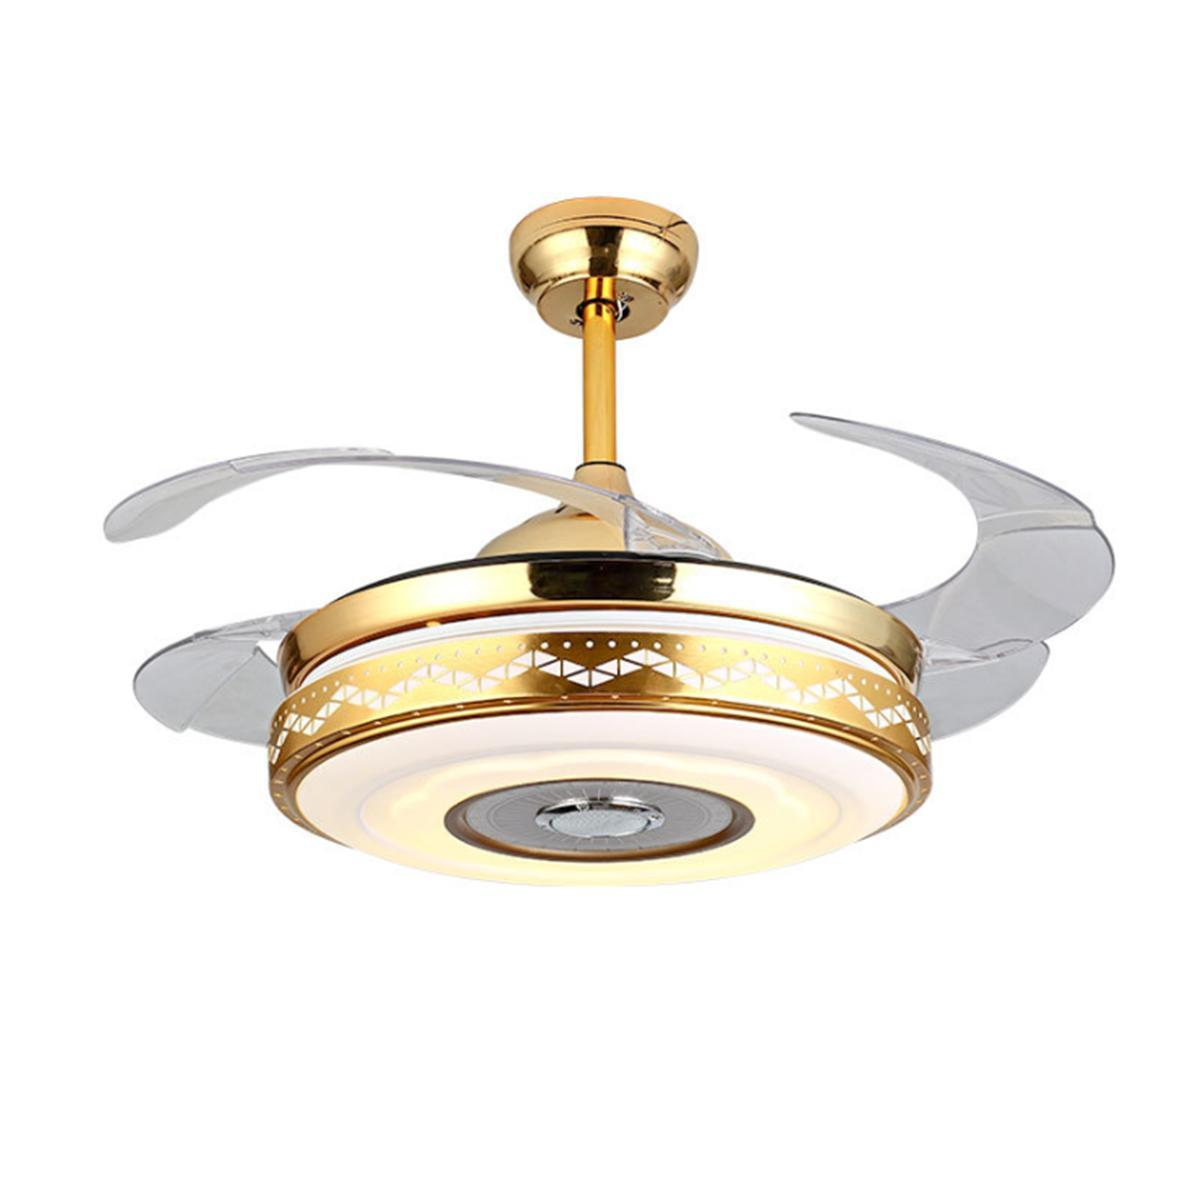 Ceiling Fan With Folding Blades 42 108cm 4 Folding Blade Ceiling Fan Led Lamp Chandelier With Light Remote